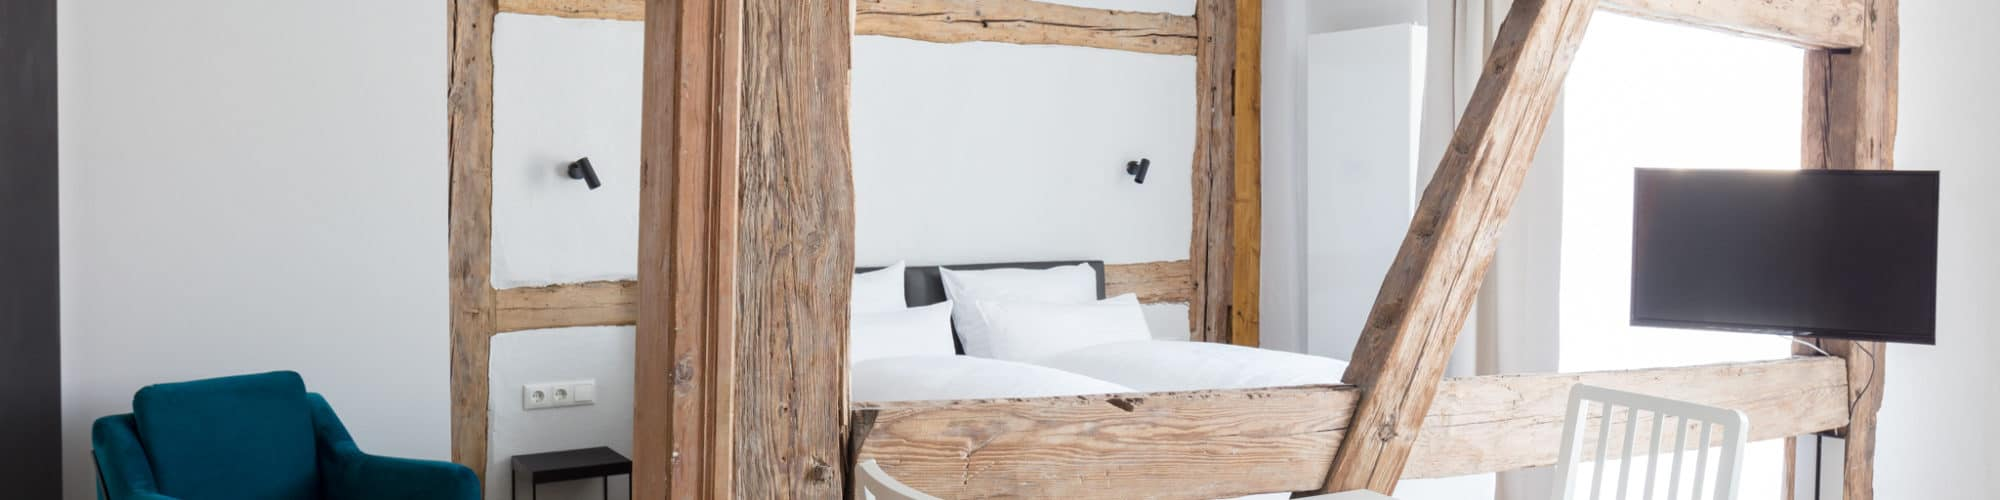 Markt 15 - Guest room with a double bed and open framework